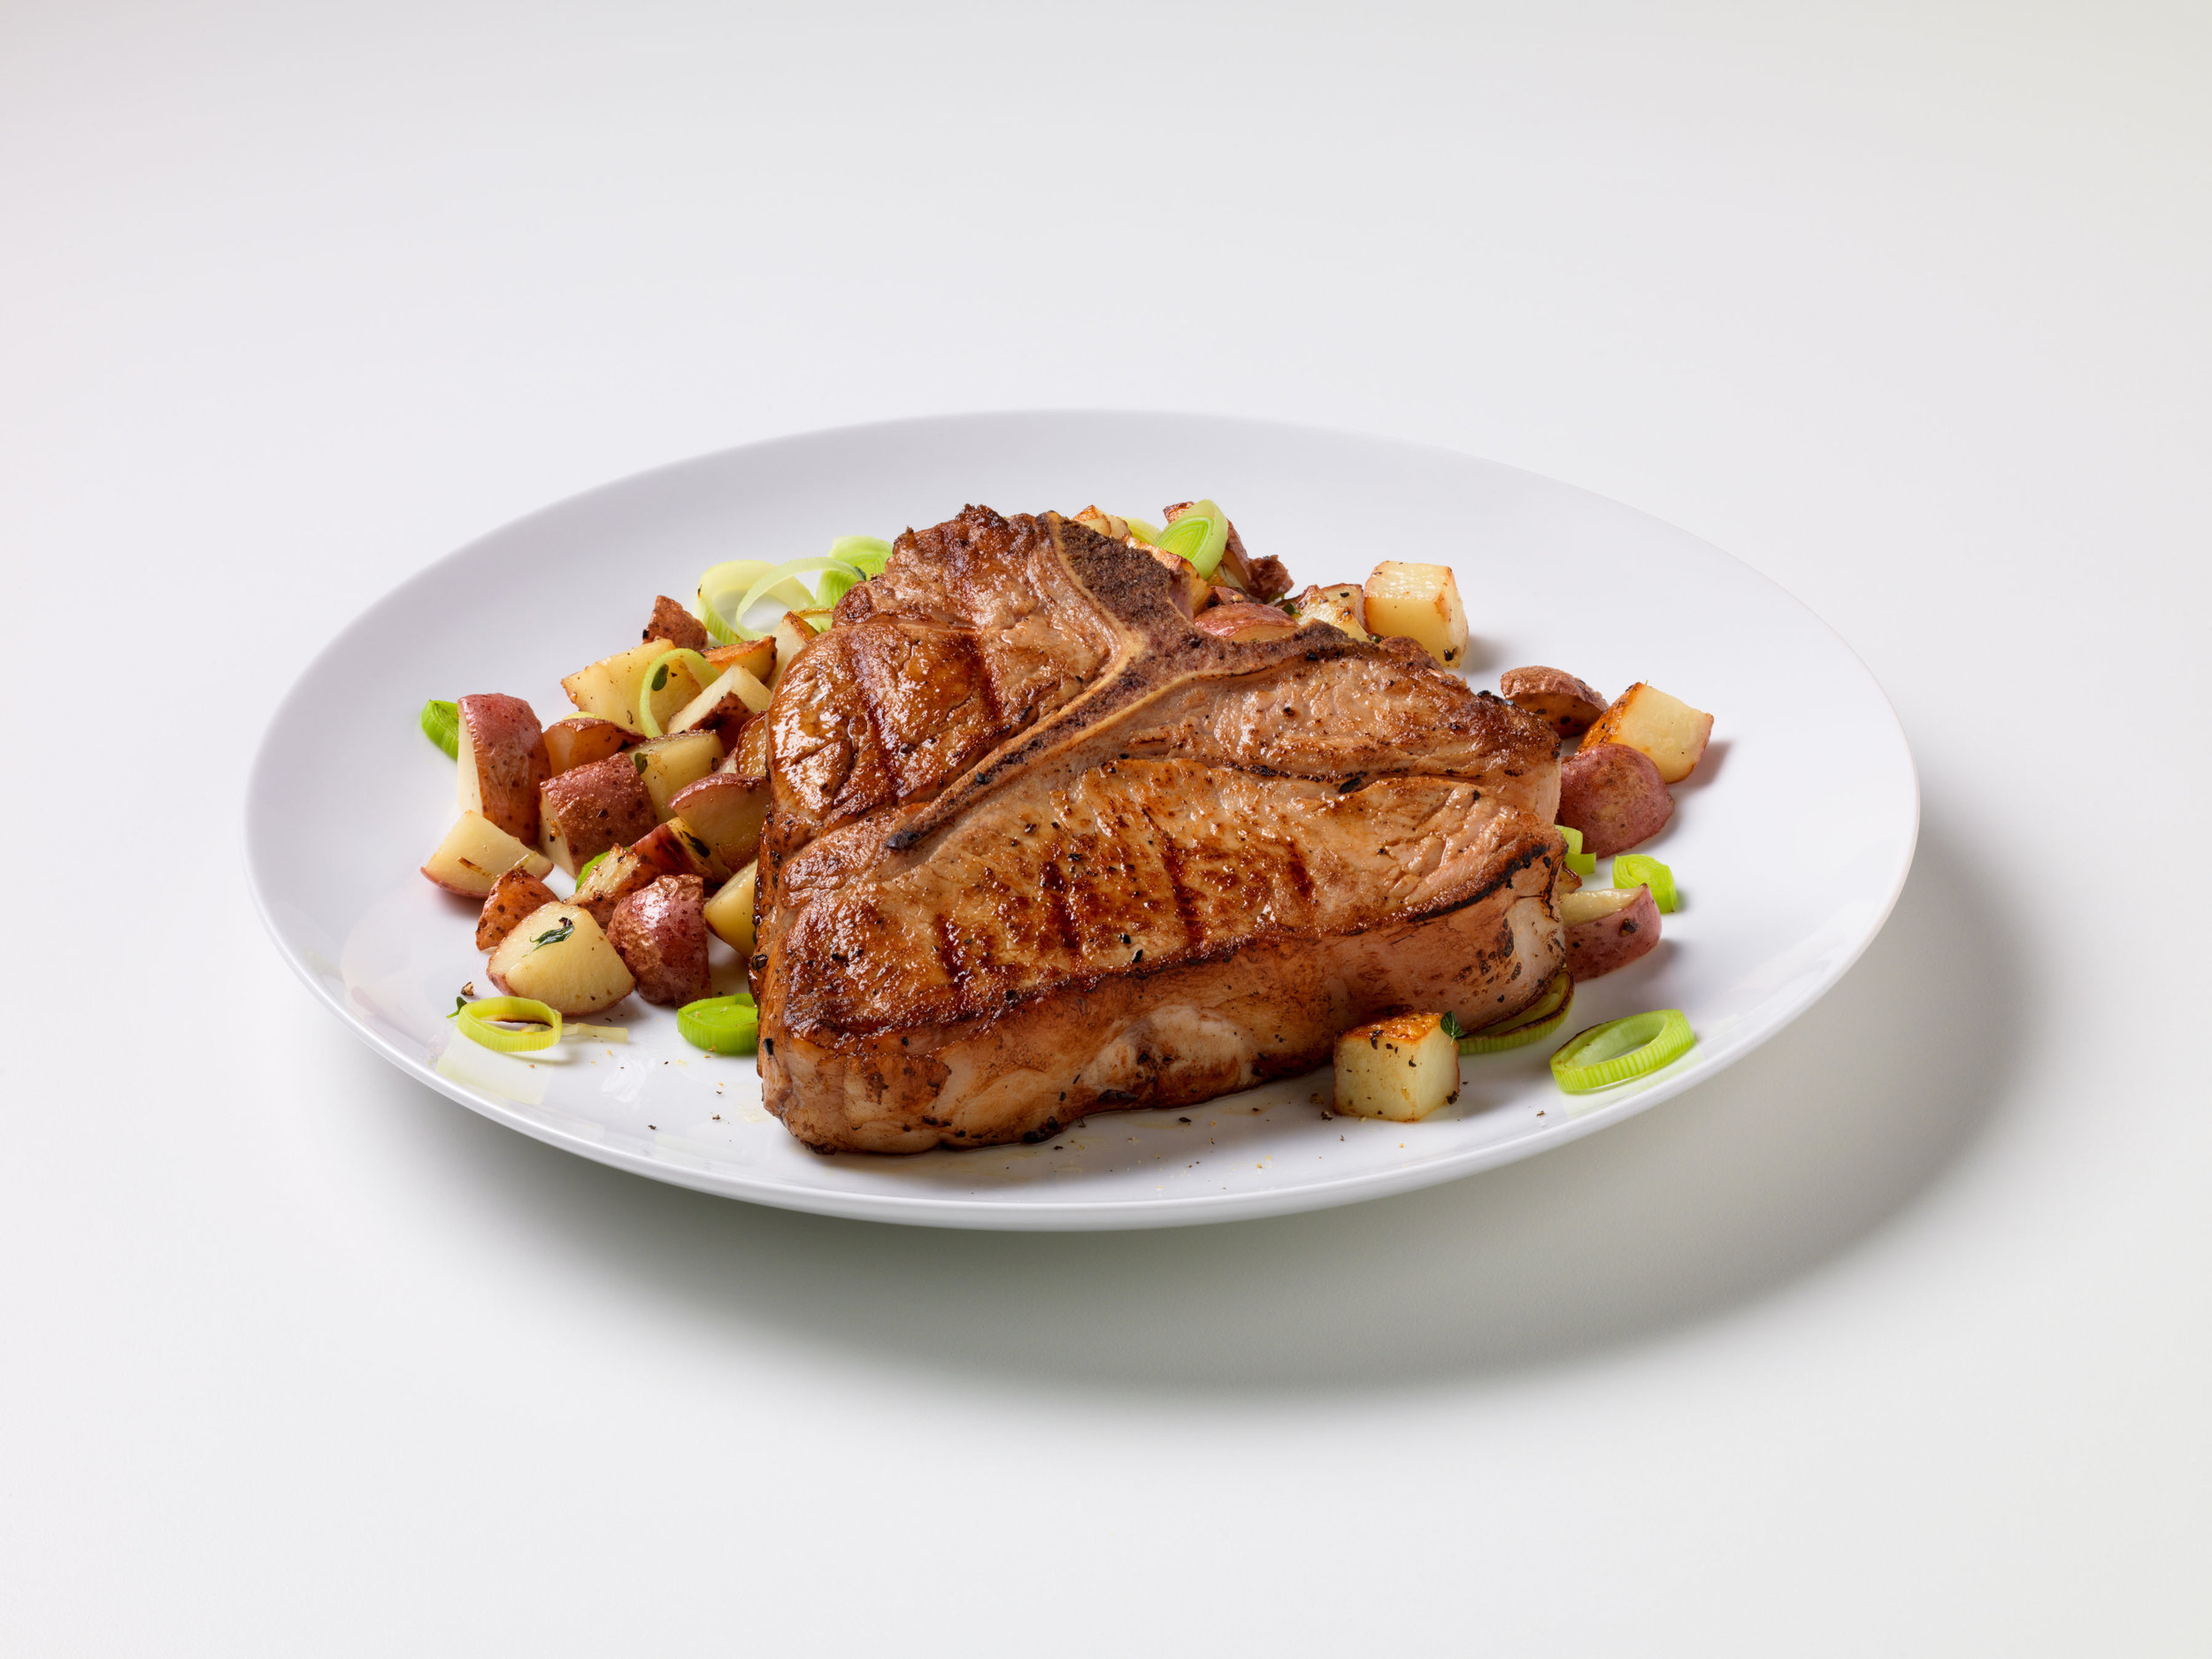 Grilled-Veal-Chop-with-Potato-Leek-Hash.jpg